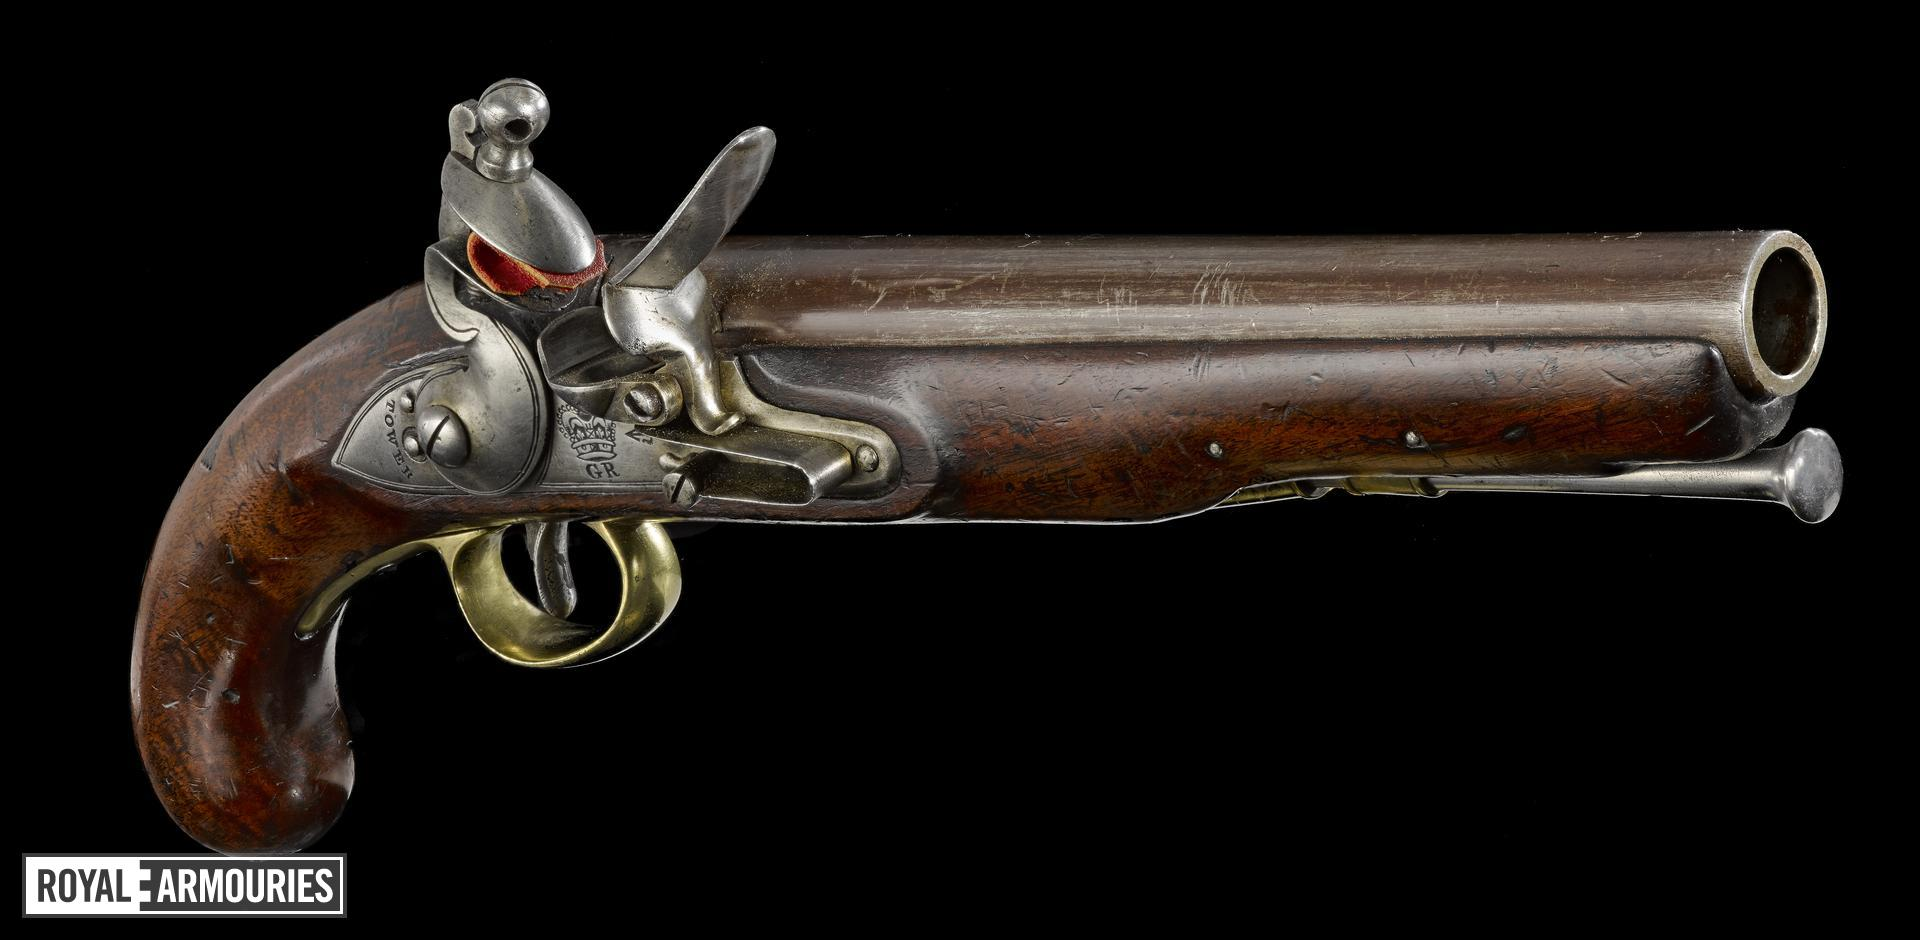 Flintlock muzzle-loading military pistol - Pattern 1796 Heavy Cavalry Pistol